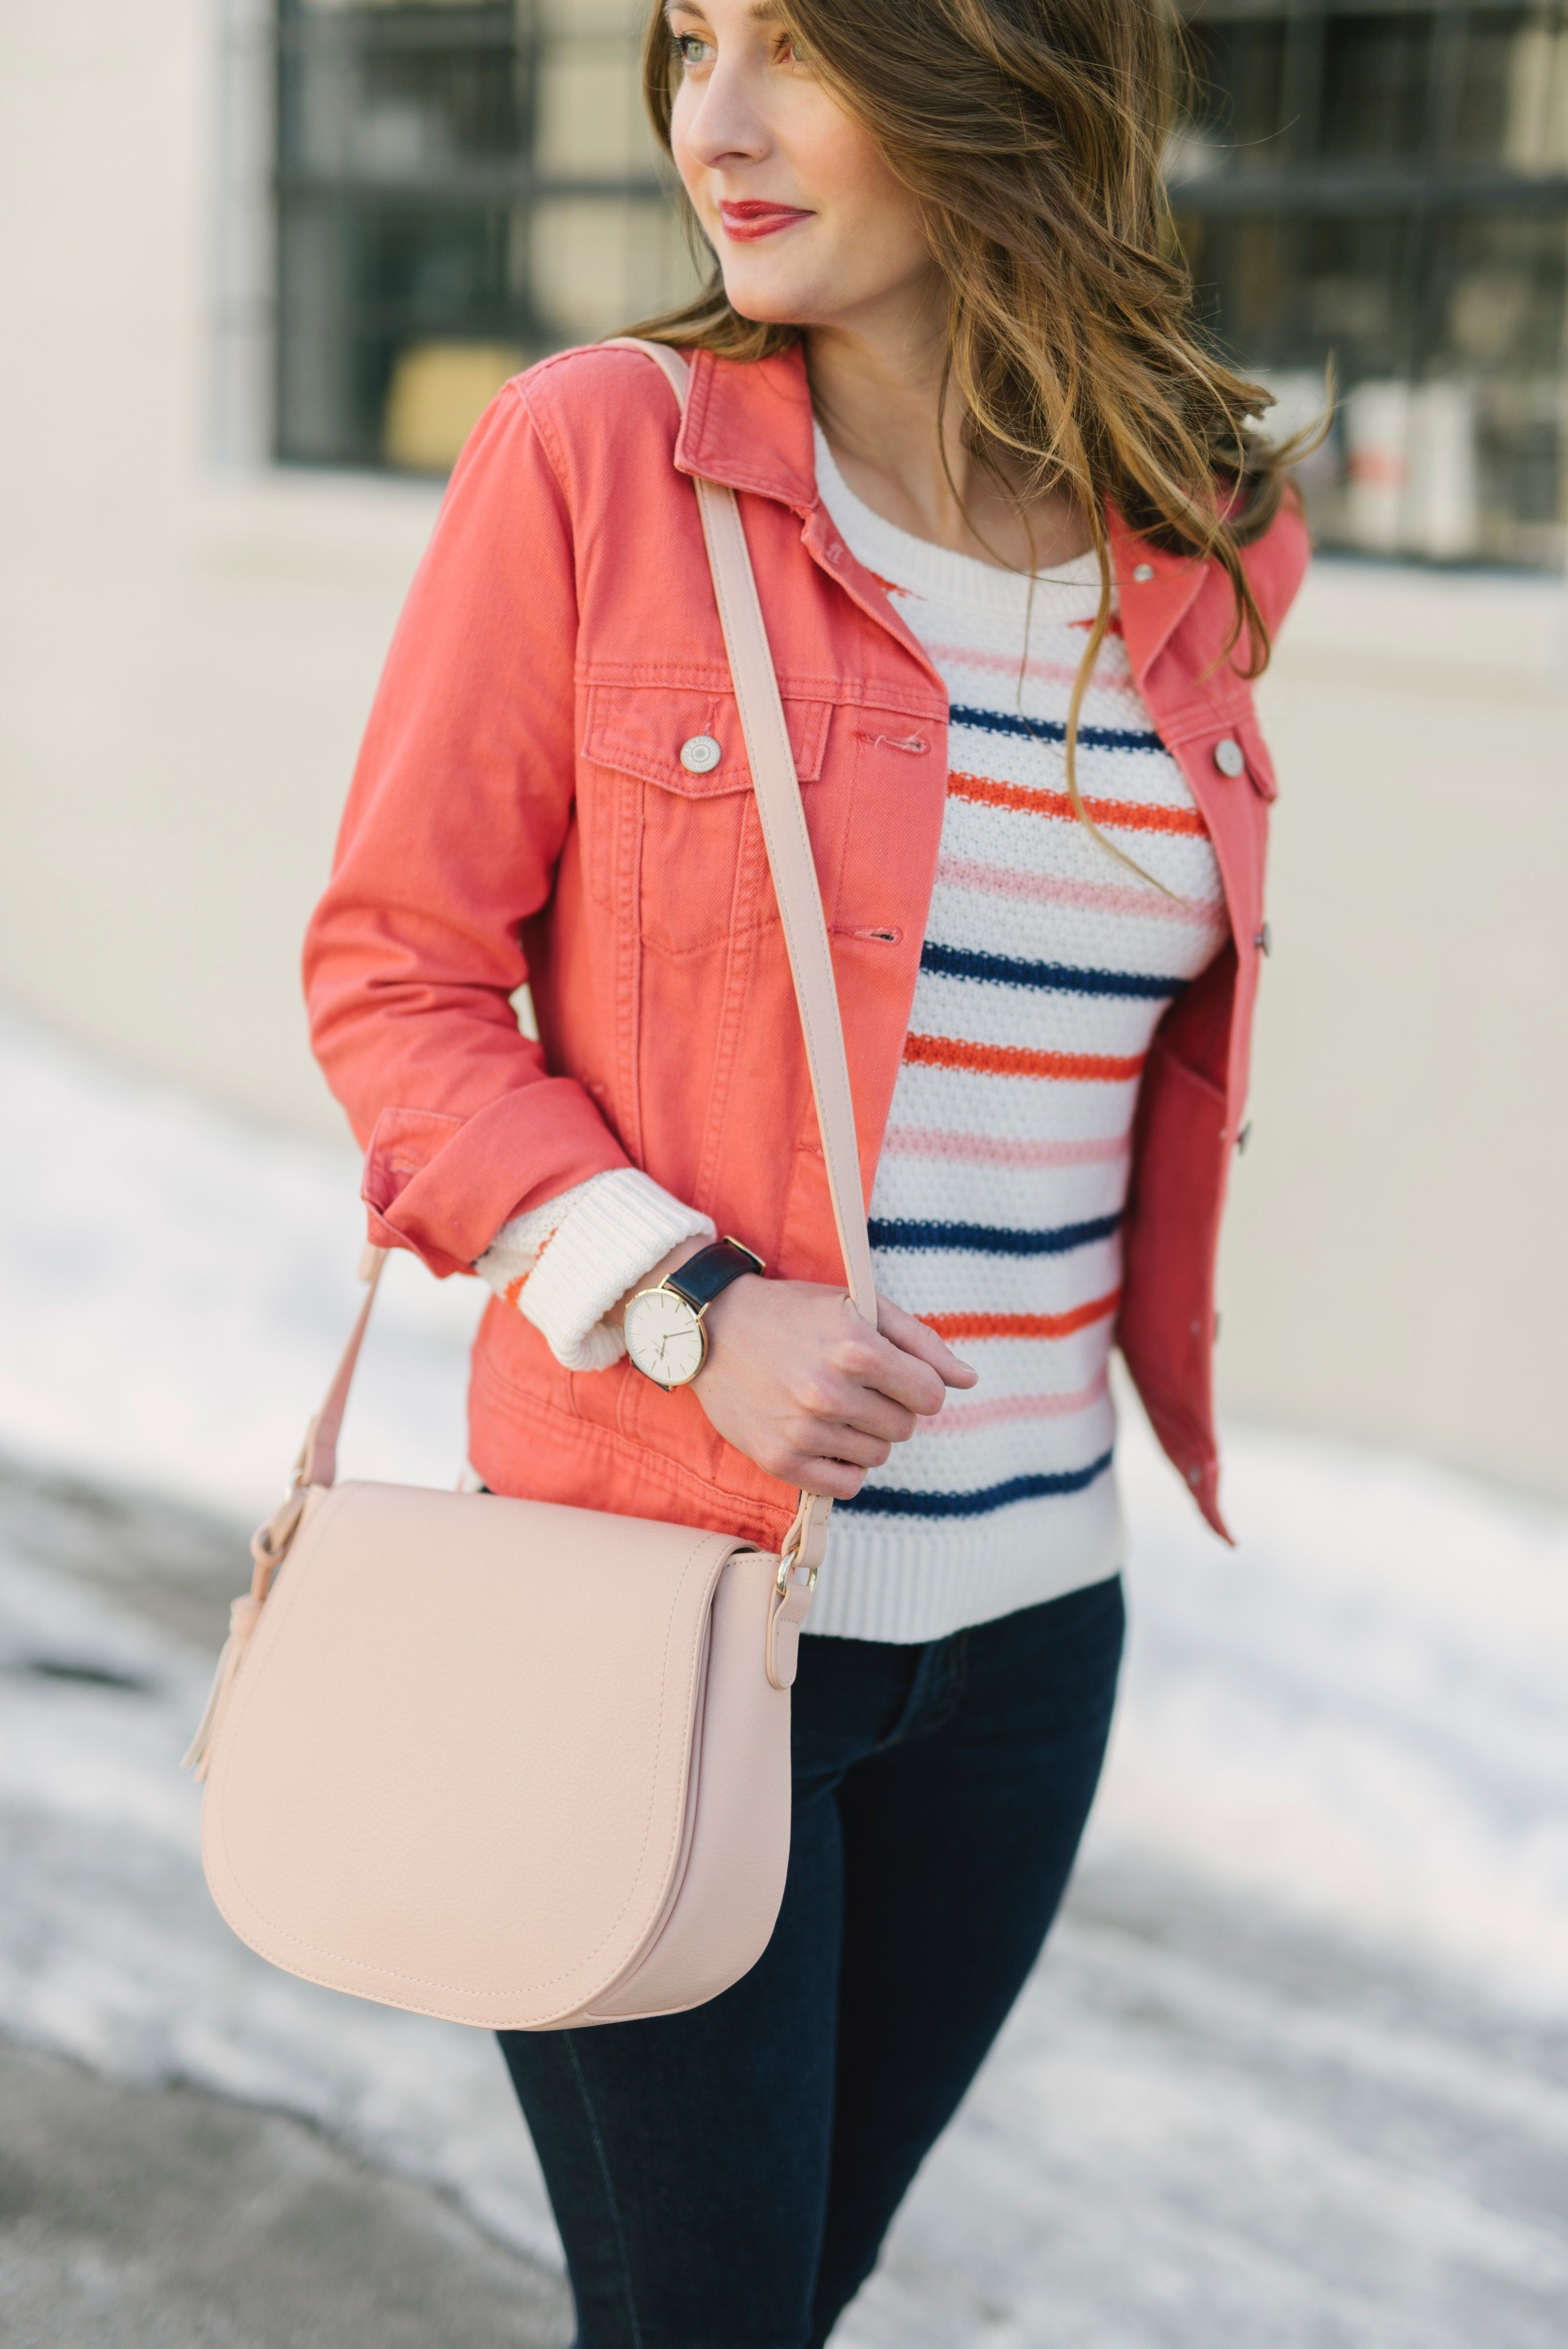 Orange and white dresses ideas with jacket, blazer, jeans